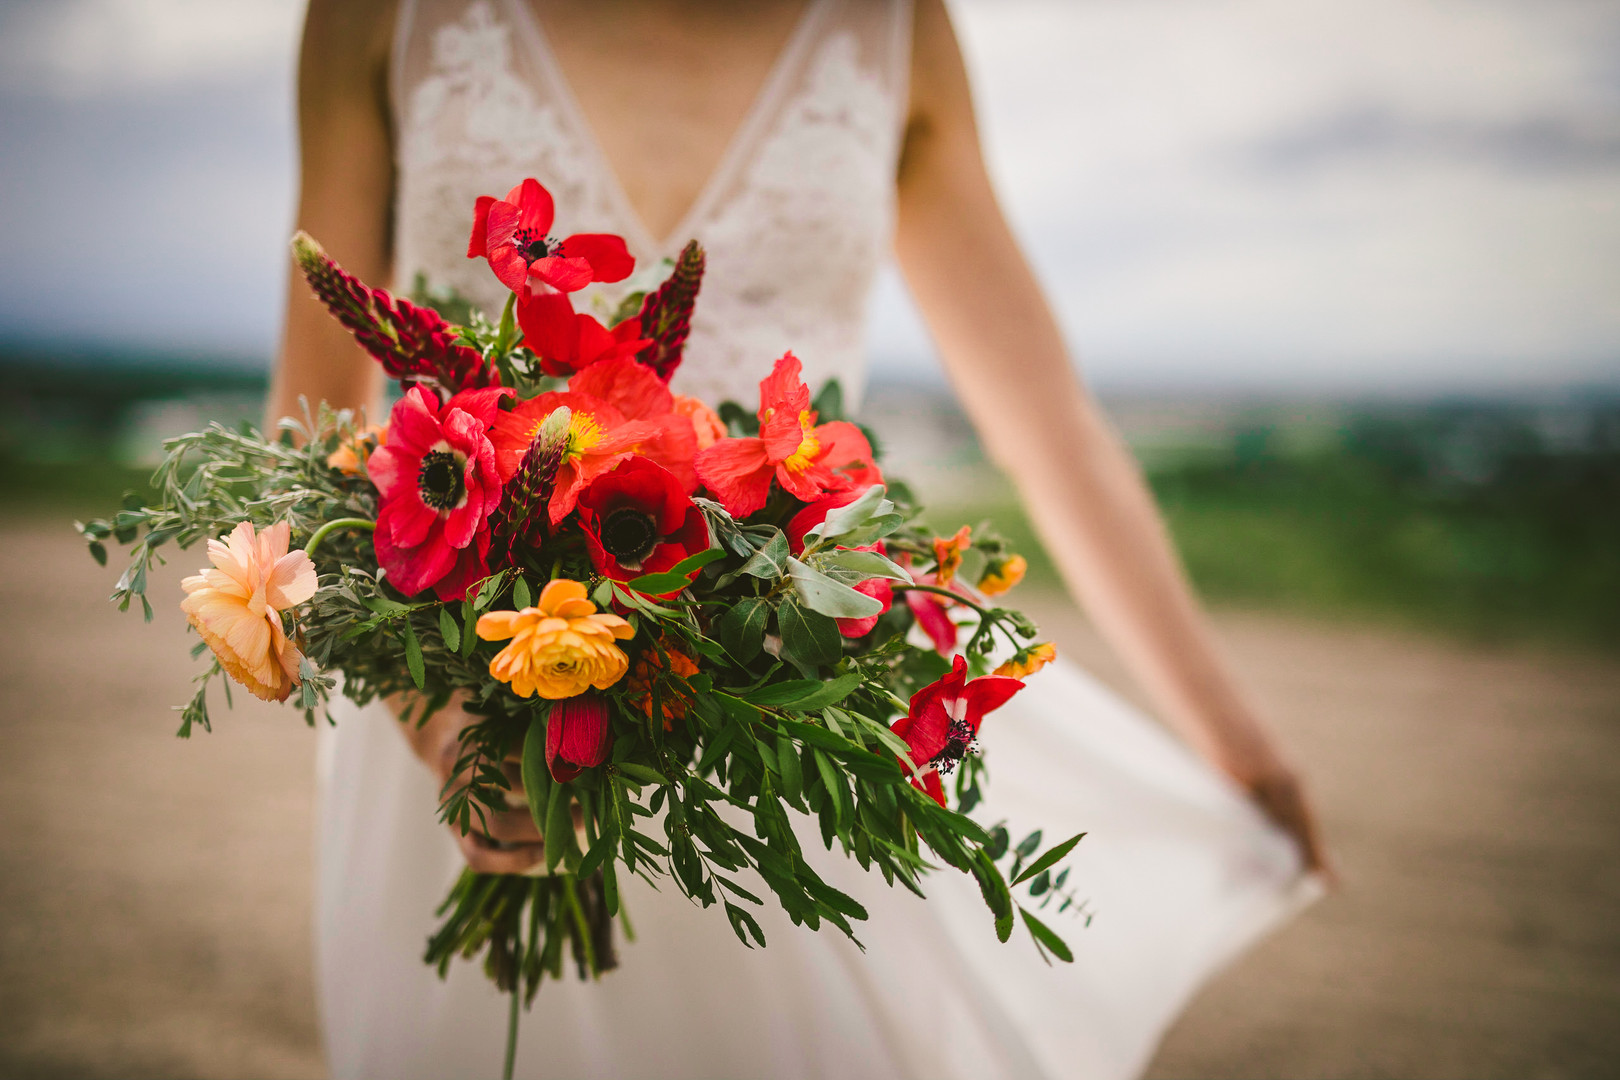 Allison's bouquet by Labellum Flowers in Bozeman, Montana